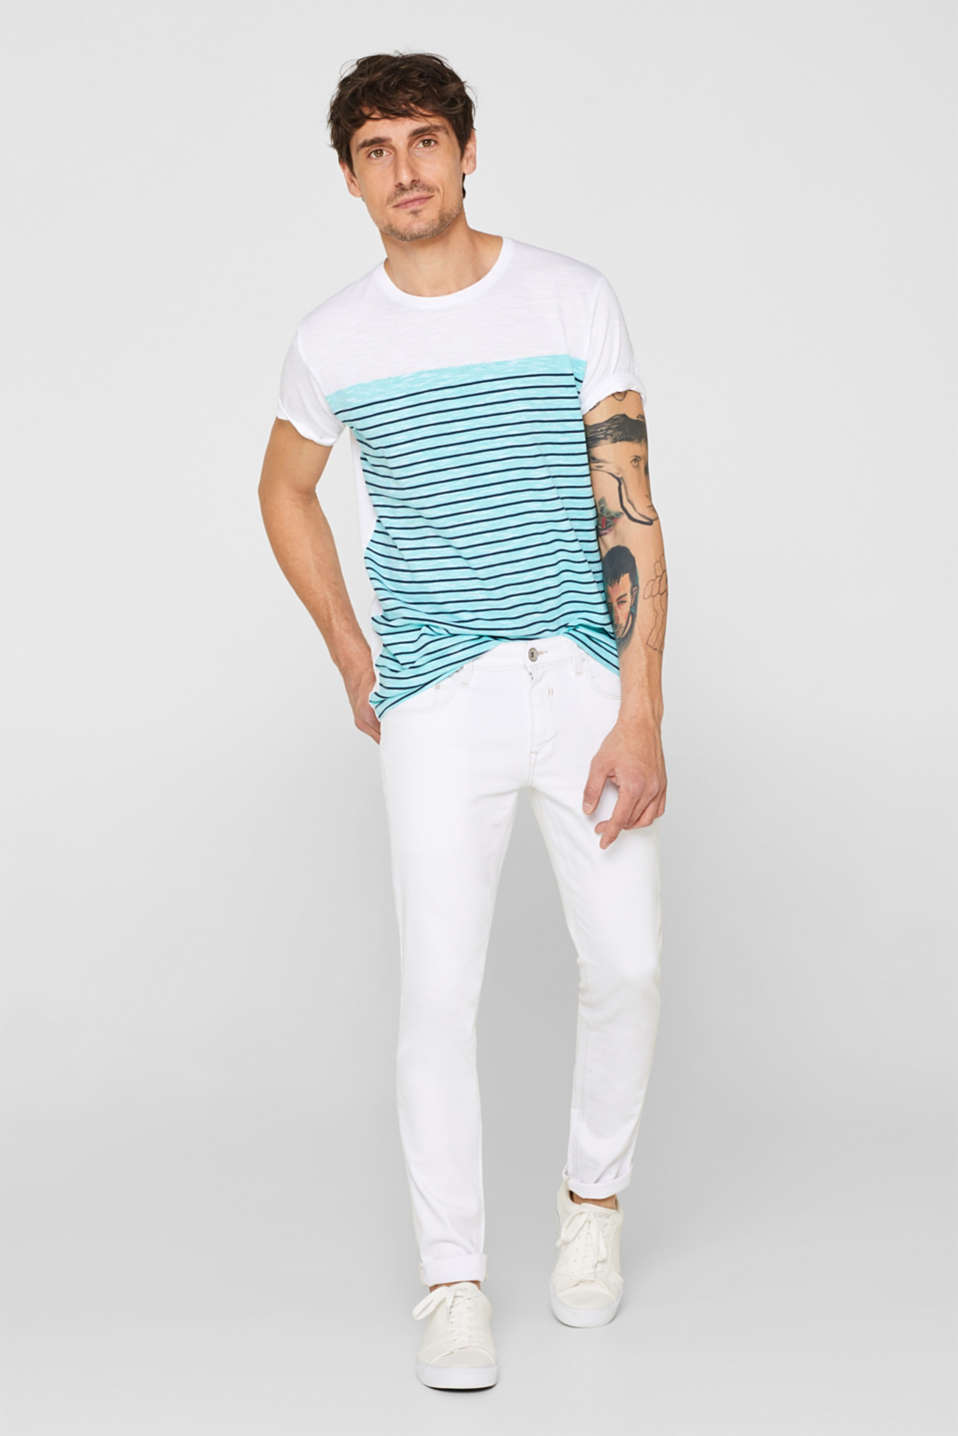 Jersey T-shirt with stripes, 100% cotton, LIGHT AQUA GREEN, detail image number 2